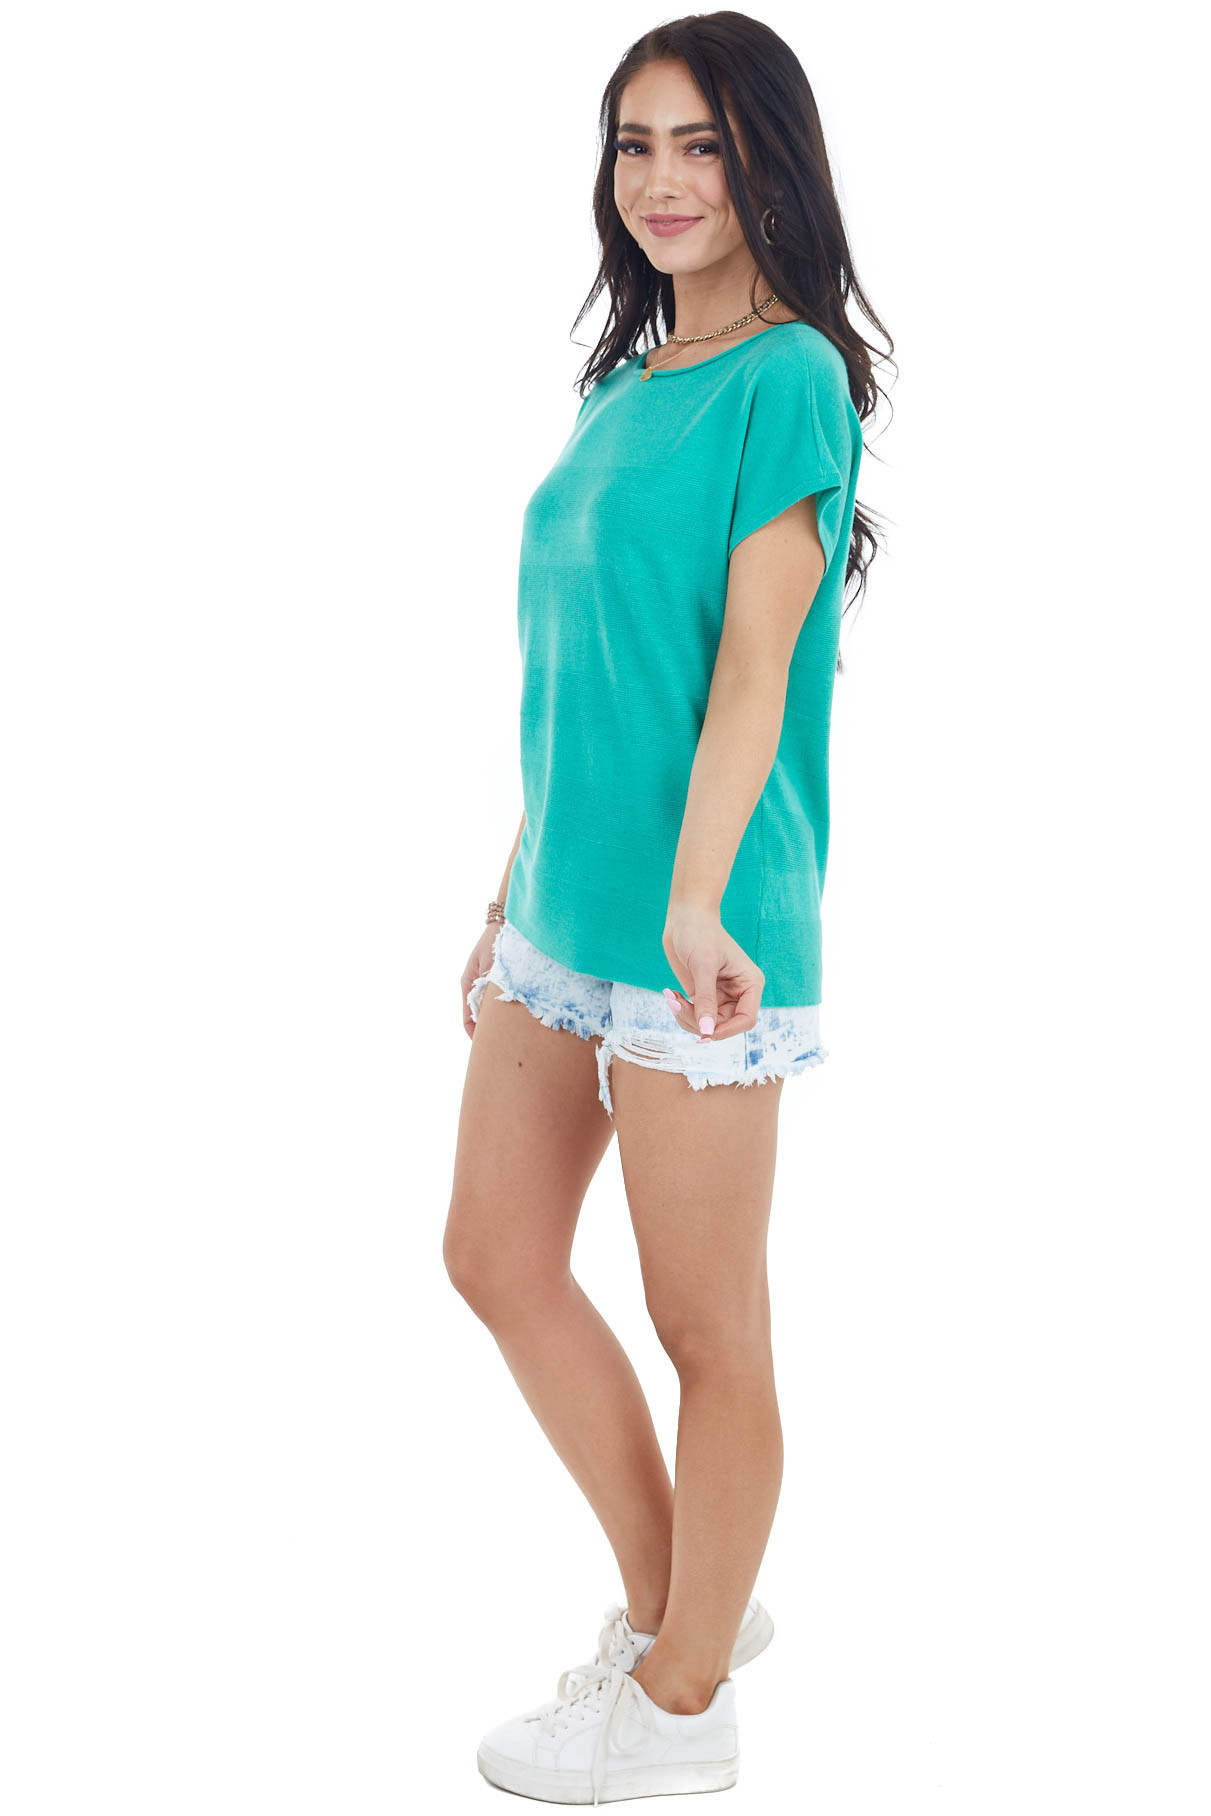 Jade Textured Striped Stretchy Knit Top with Short Sleeves